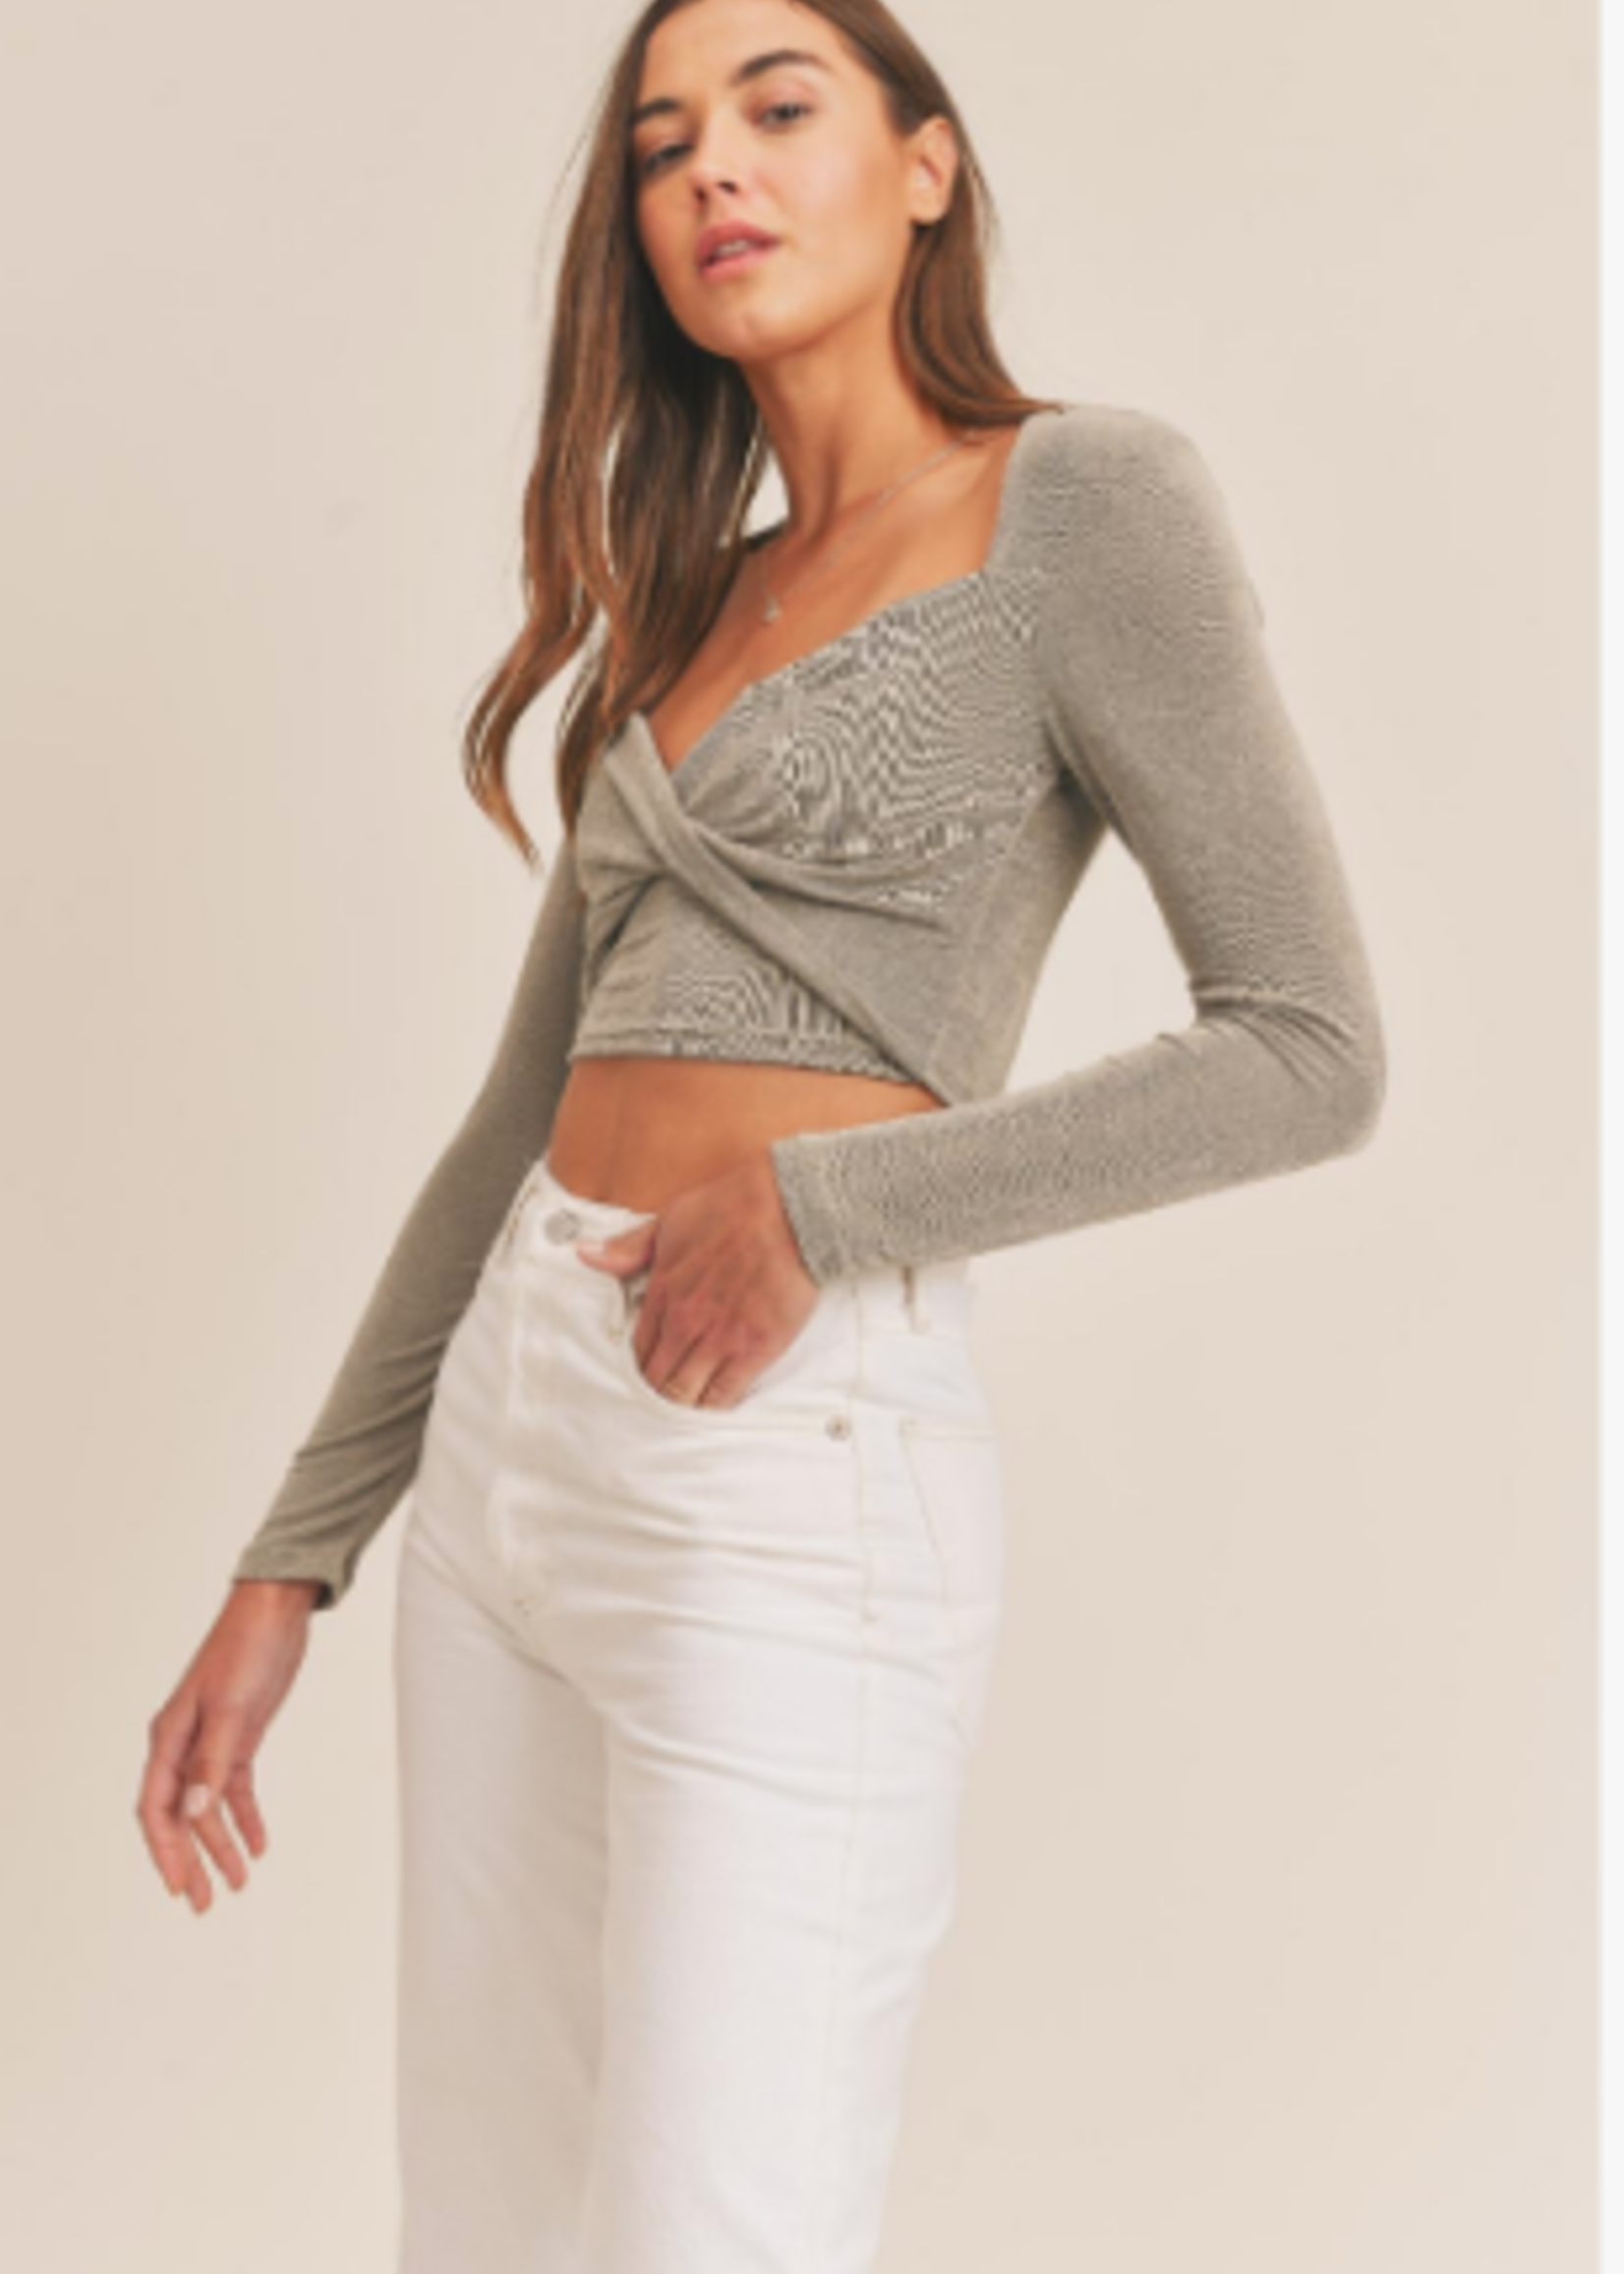 Best Days Ever Top (2 Colors)